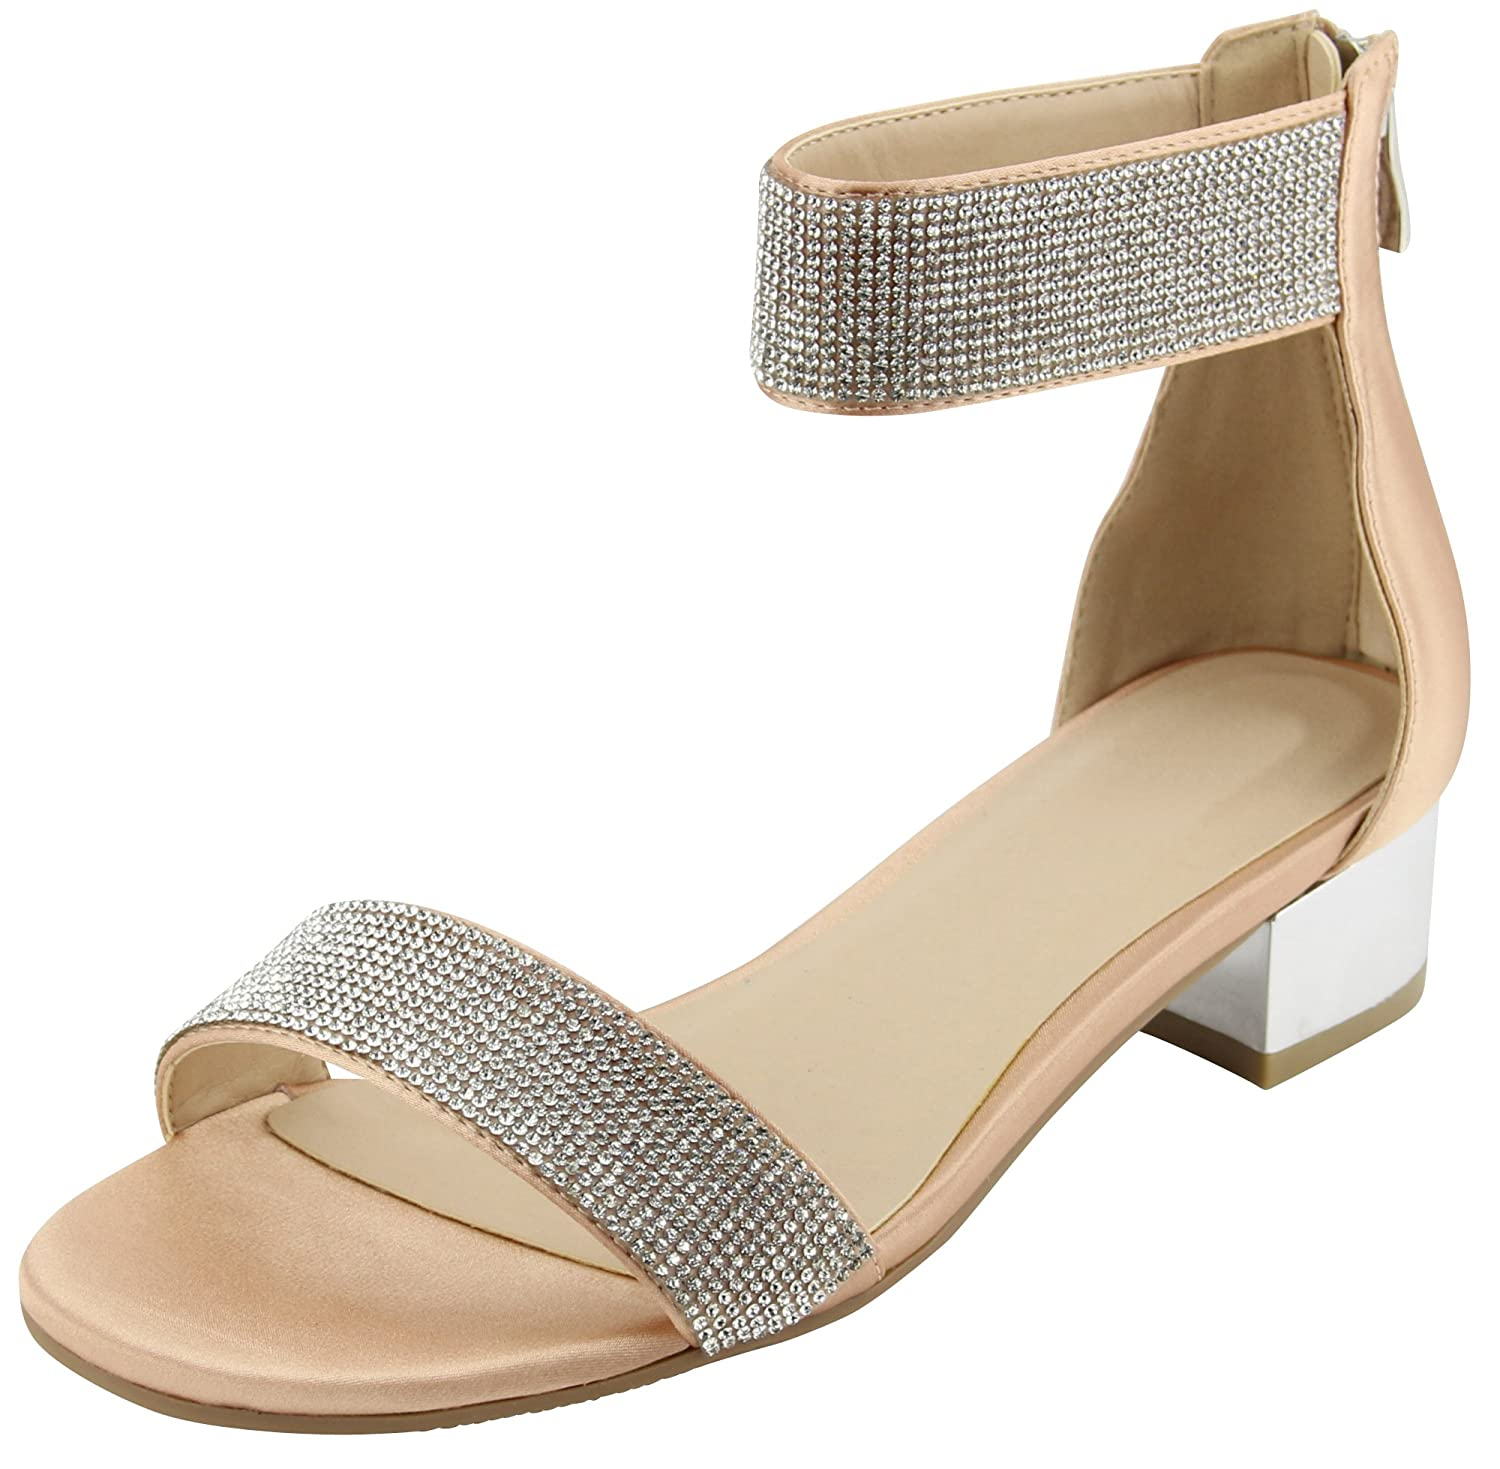 2c373a44f6 Amazon.com | Cambridge Select Women's Open Toe Single Band Ankle Strappy  Rhinestone Crystal Chunky Block Low Mid Heel Dress Sandal | Heeled Sandals